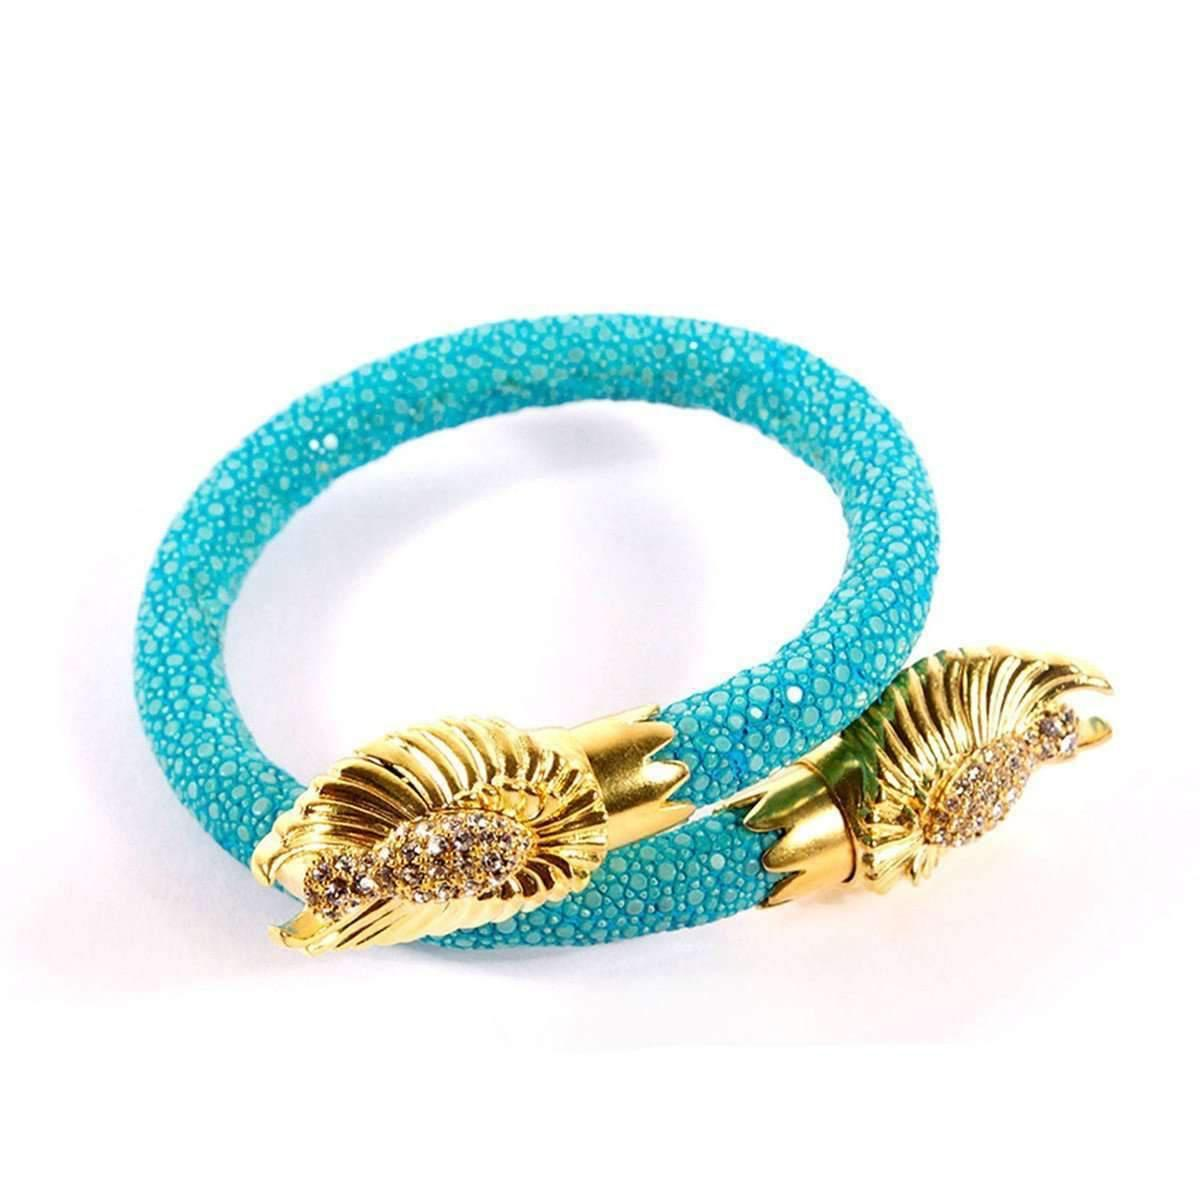 BuDhaGirl Buddha End Caps Bracelet - Focus And Healing - Turquoise 4jeY7T